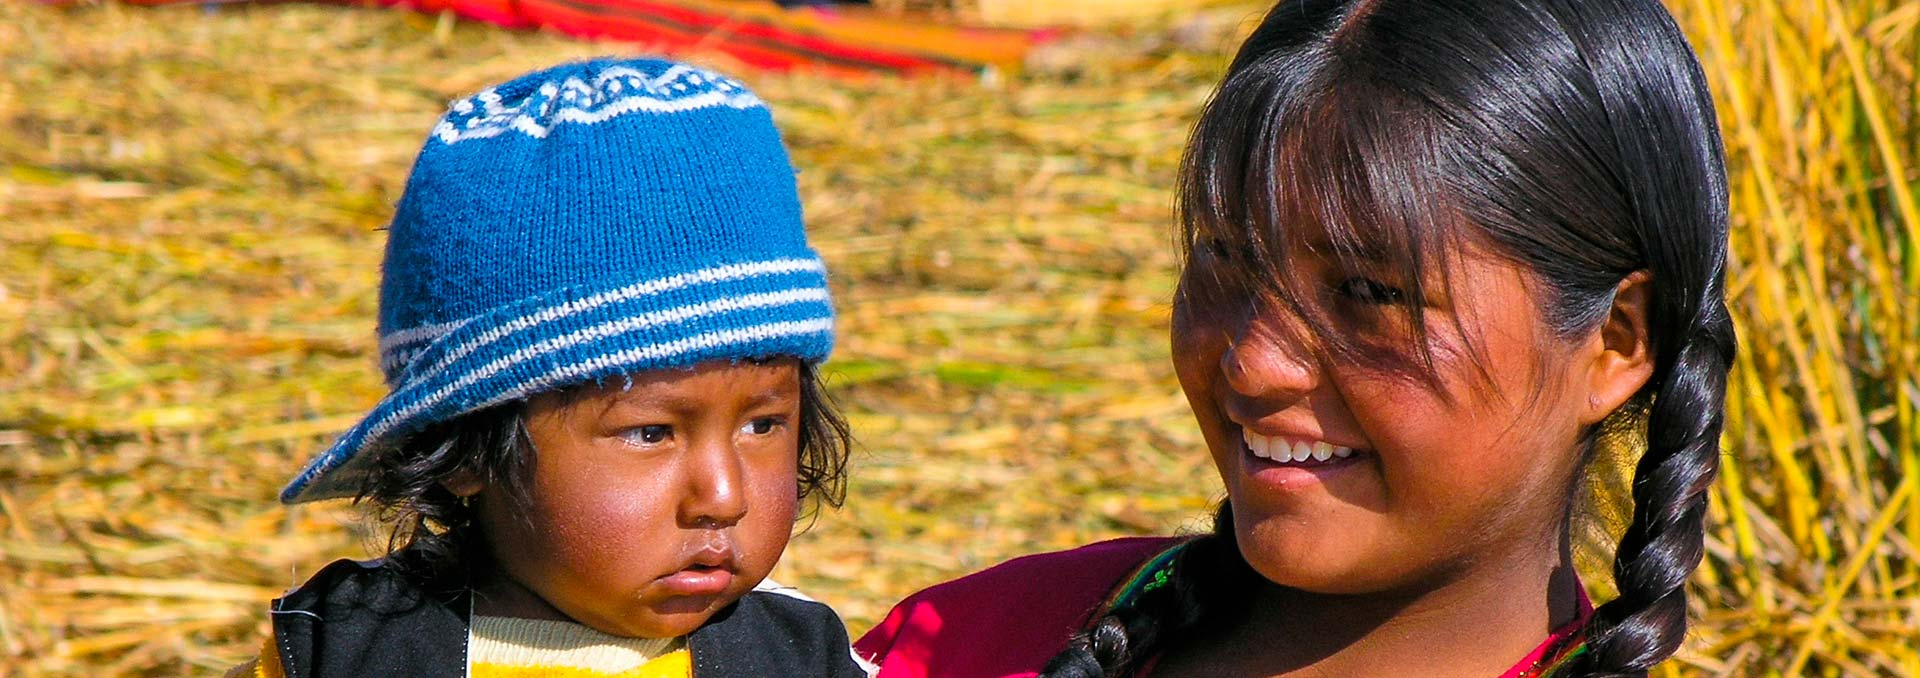 peruvian people from the andes